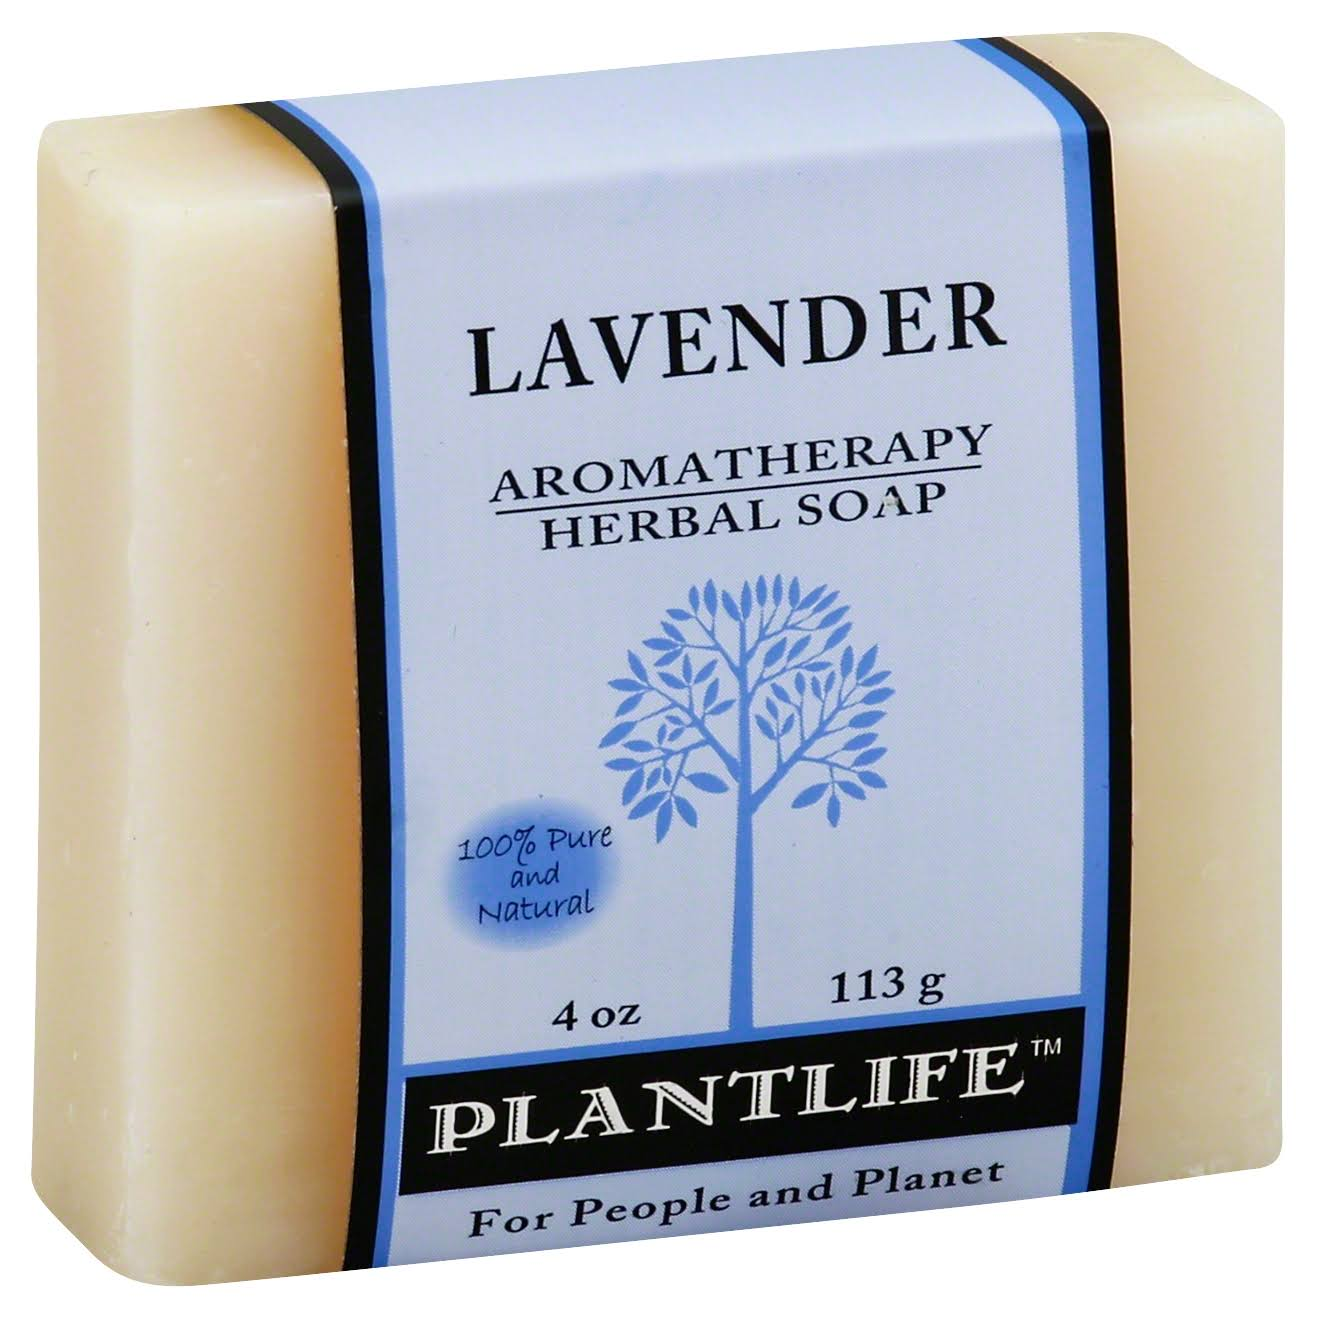 Plantlife Aromatherapy Herbal Soap - Lavender, 4 oz